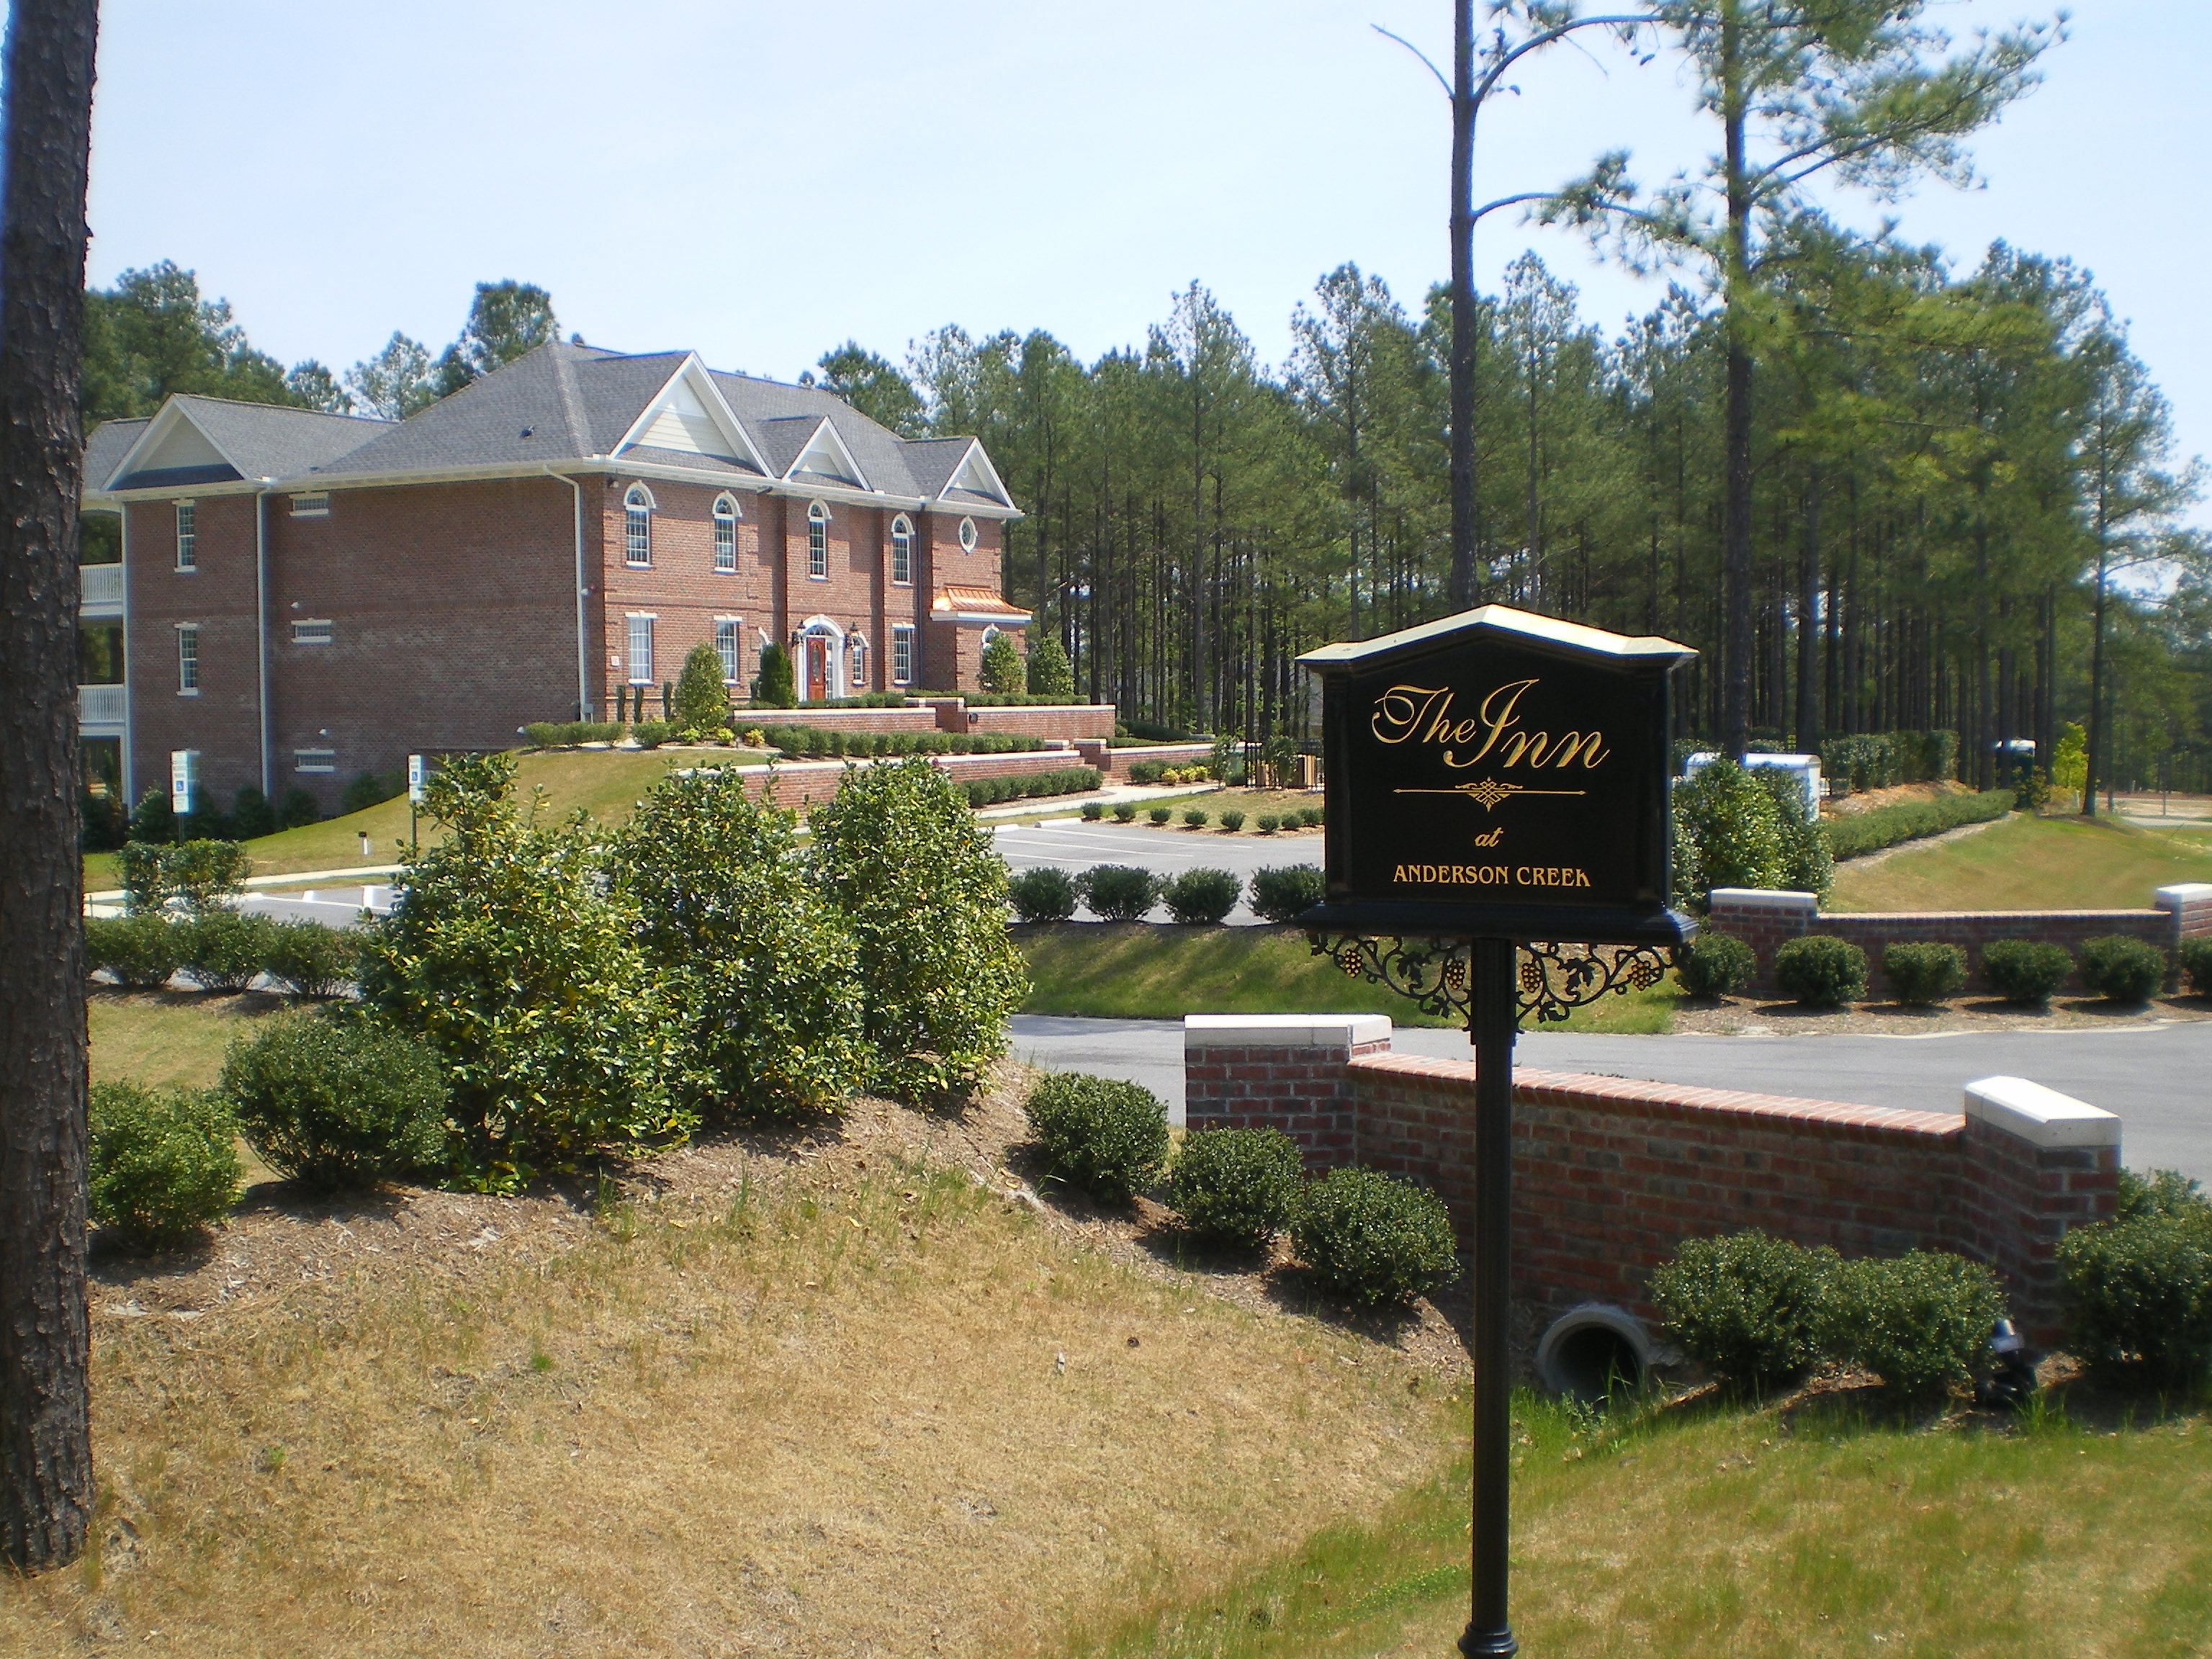 ‪The Inn at Anderson Creek Club‬